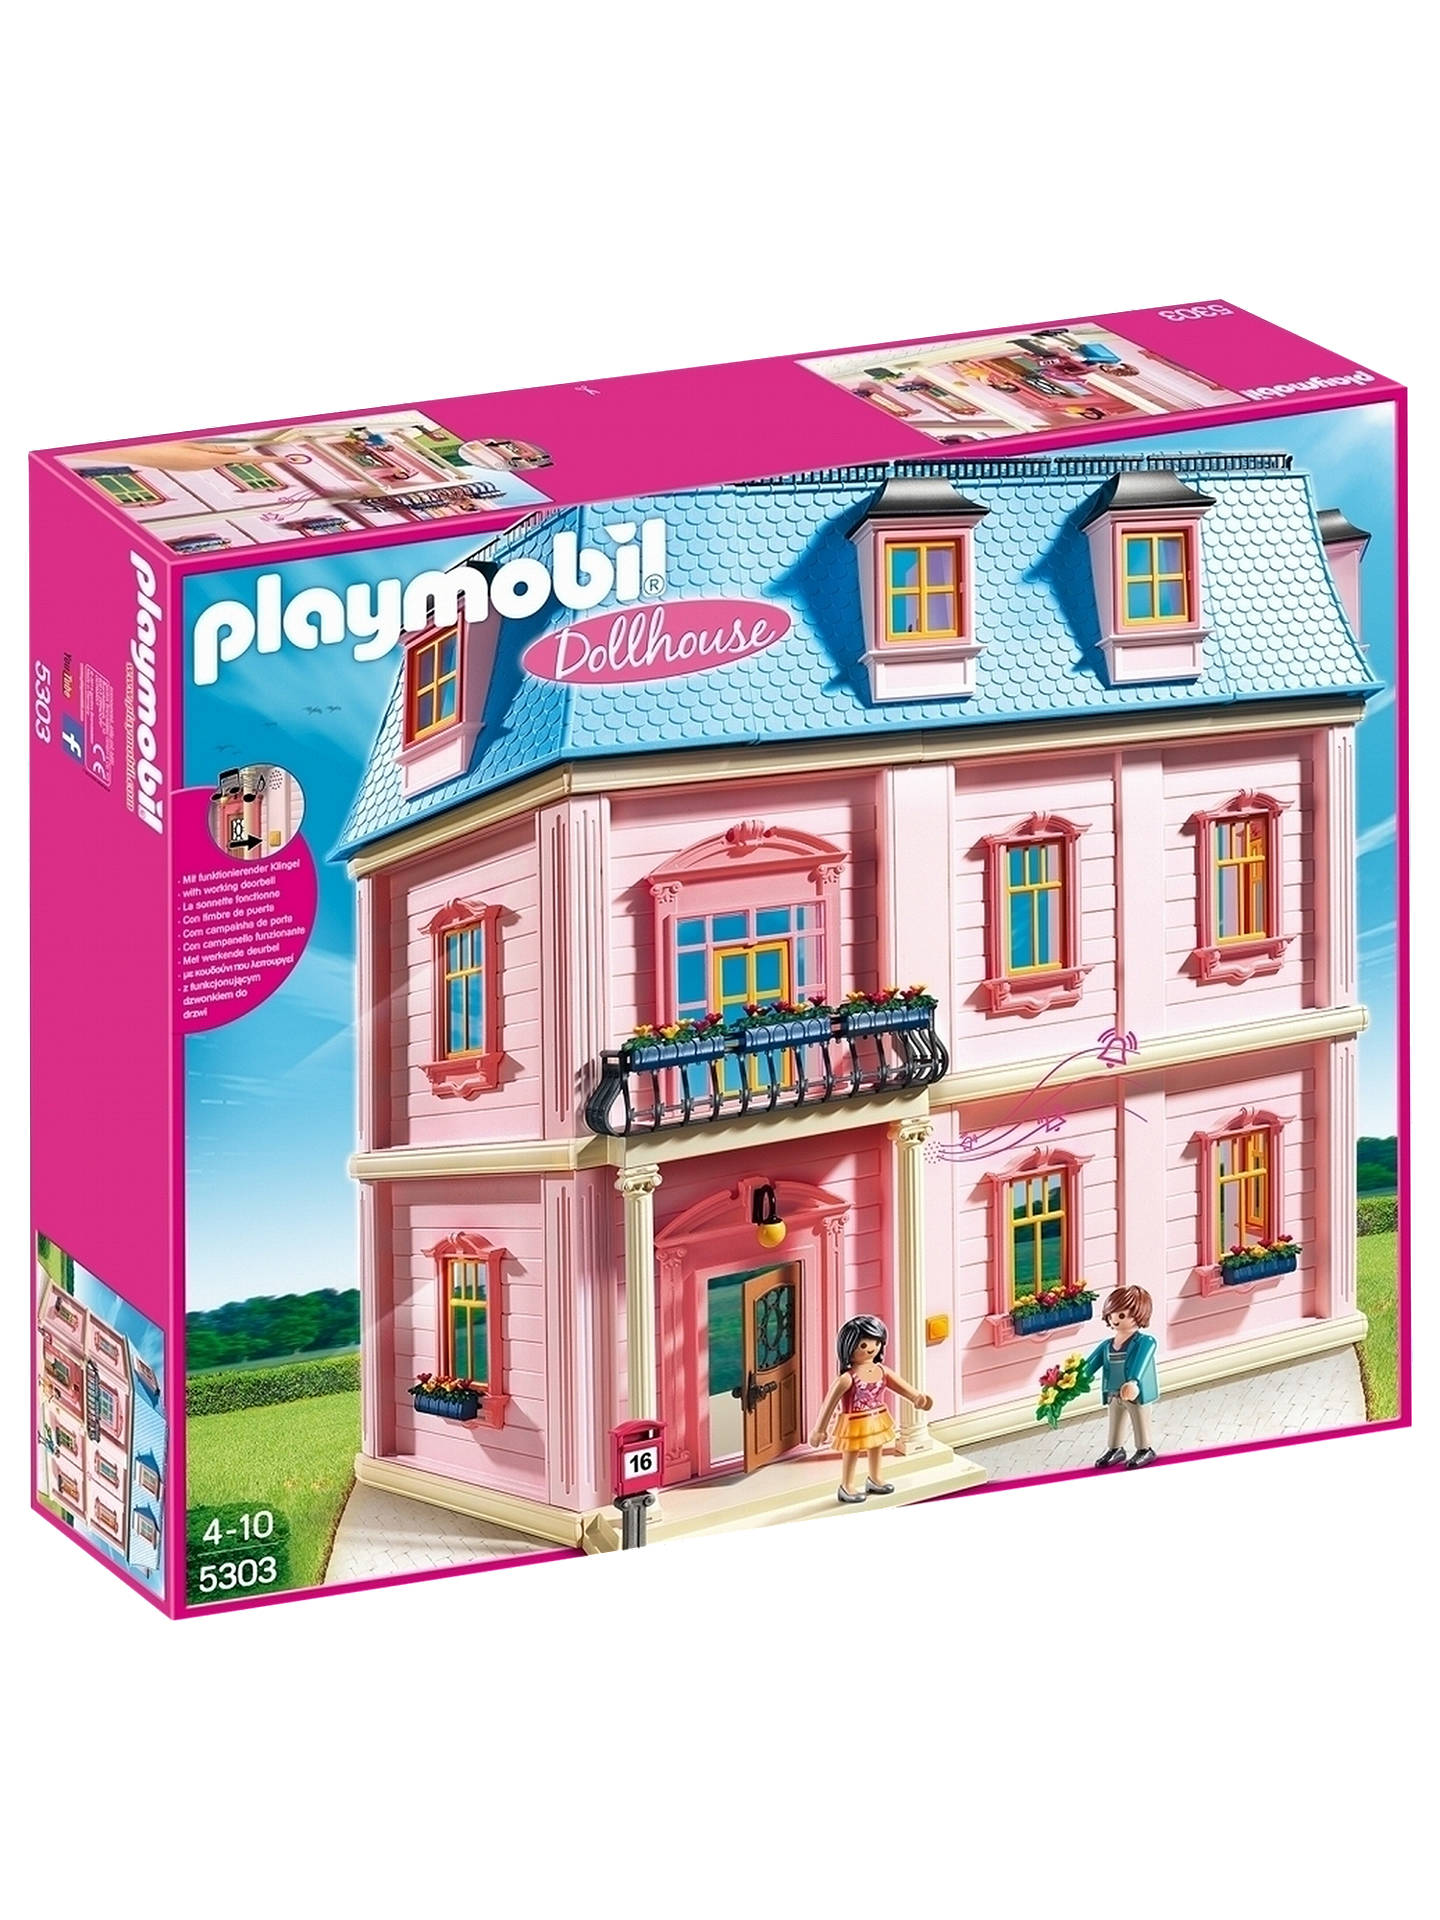 BuyPlaymobil 5303 Deluxe Dollhouse Online at johnlewis.com